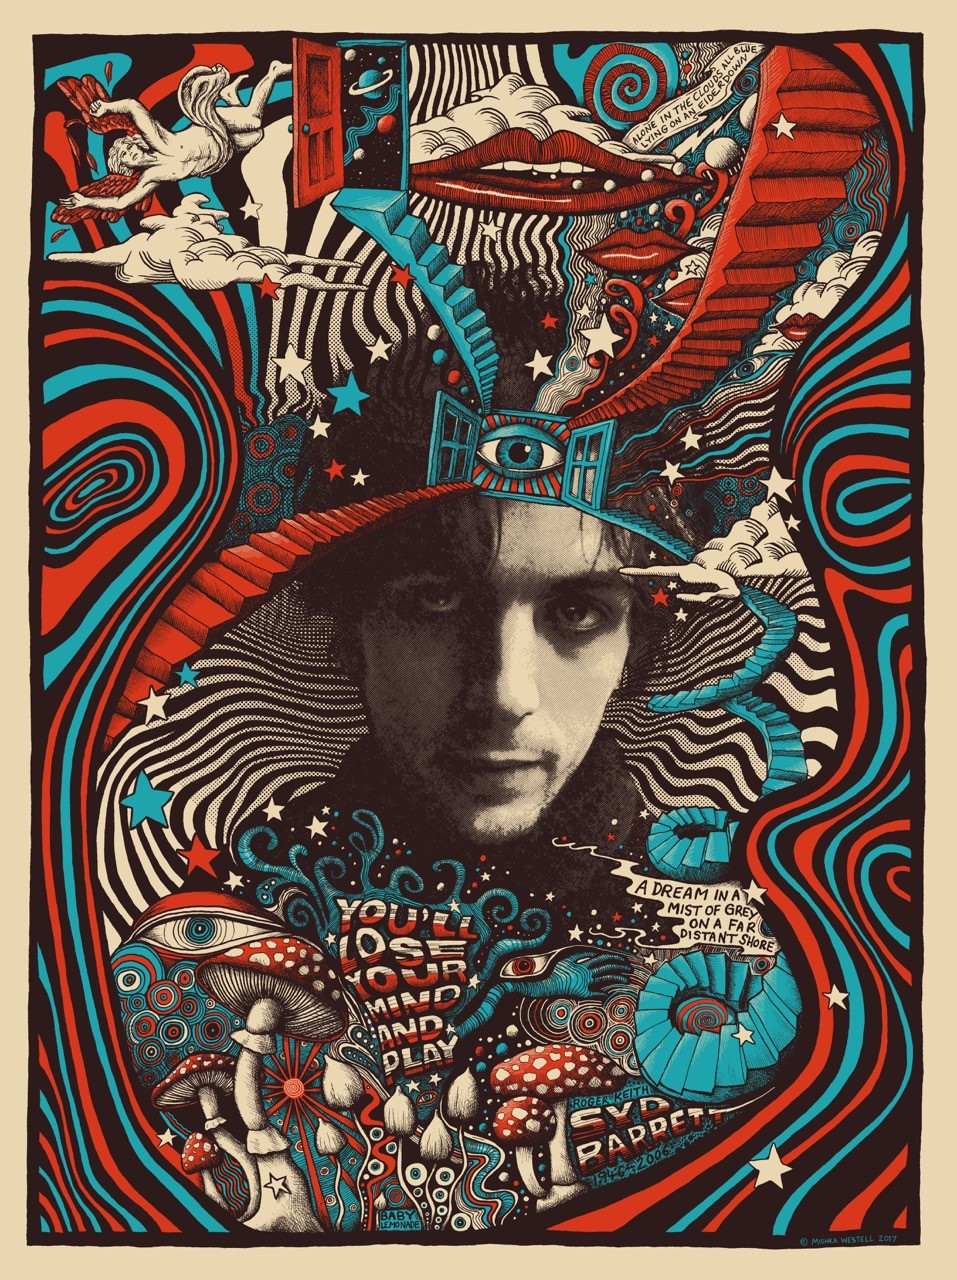 INSIDE THE ROCK POSTER FRAME BLOG: Mishka Westell Syd ...